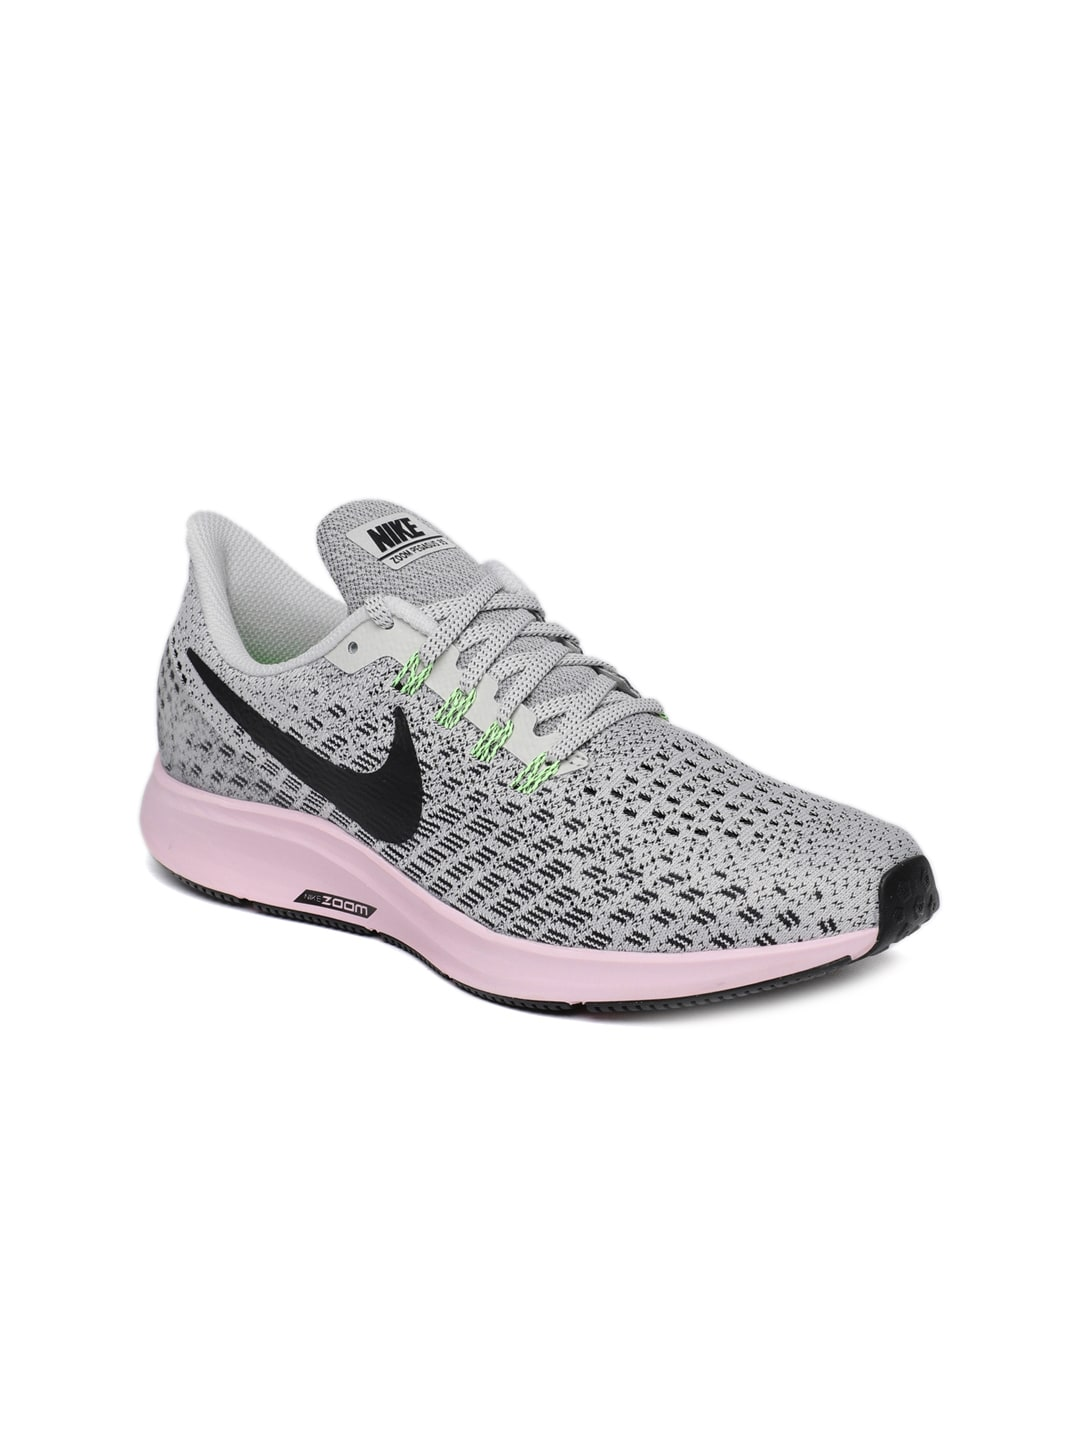 7c5e1489b13 Women Nike Running Shoes - Buy Women Nike Running Shoes online in India